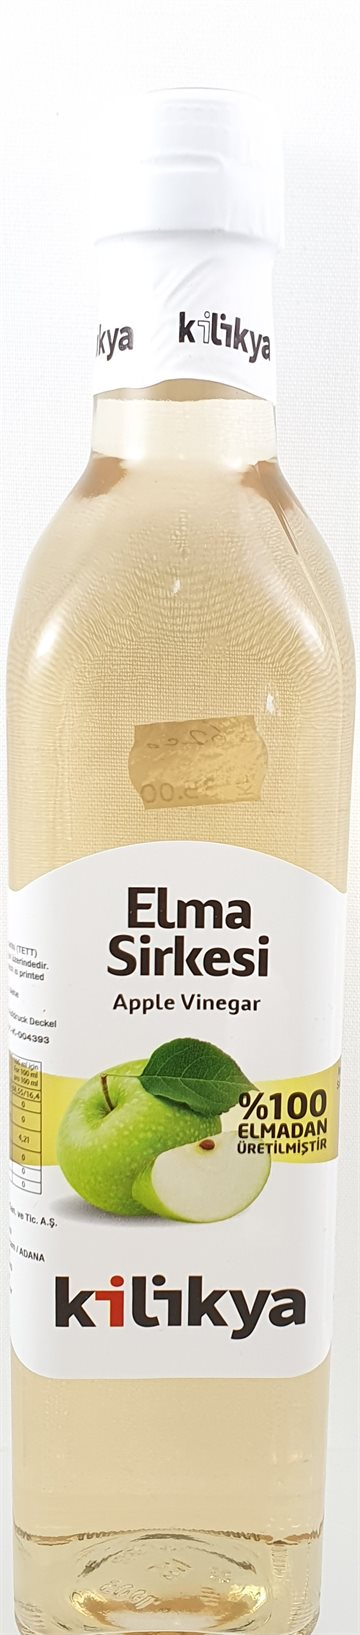 Apple Vinegar - Æble eddike 500ml Tyrkiet